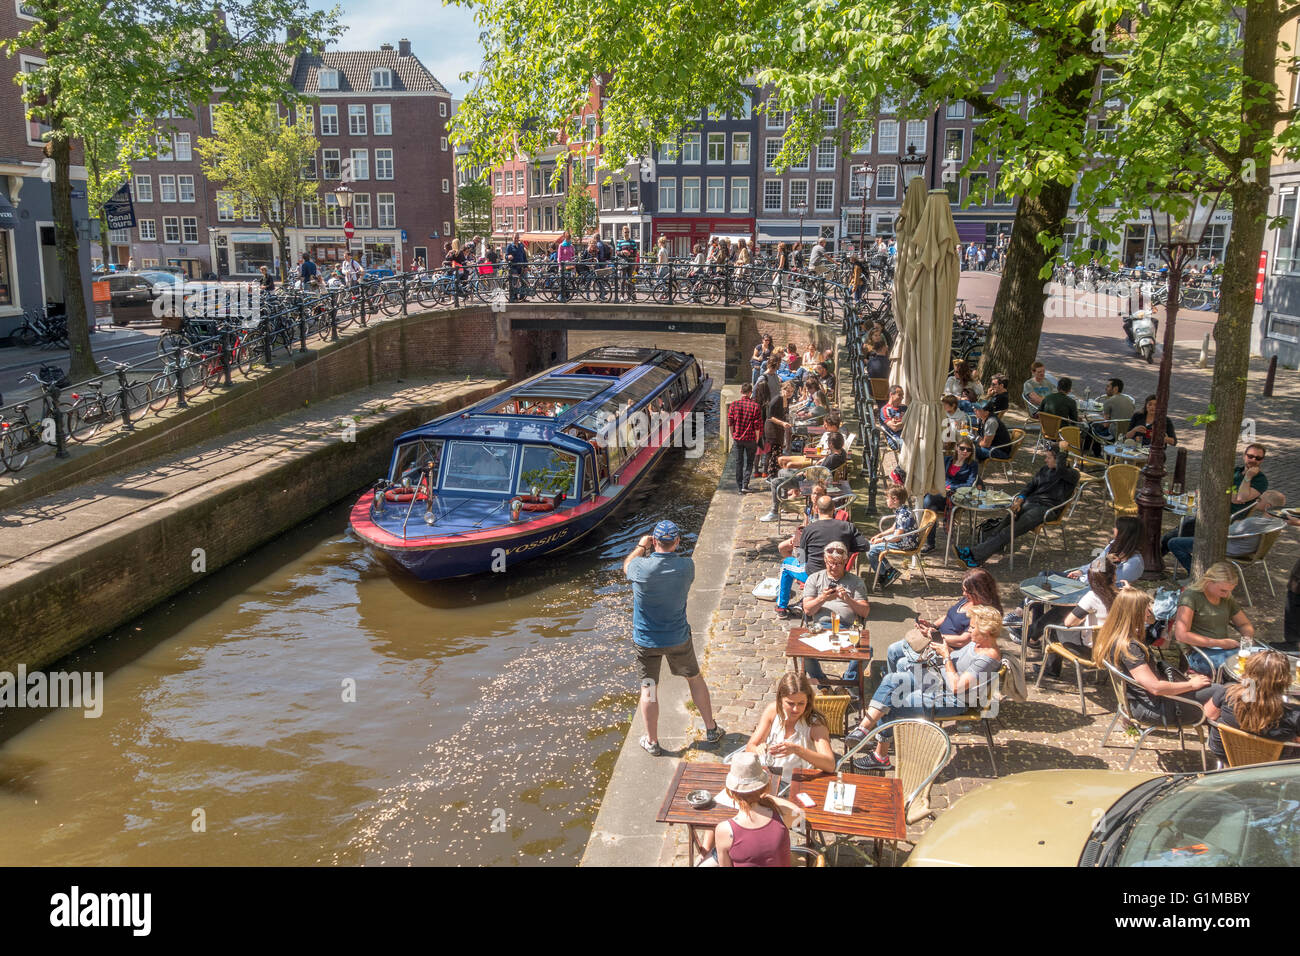 Amsterdam Canal Tour Boat passing Restaurant Bar Cafe Pub Café Spanjer & Van Twist on the narrow Leliegracht - Stock Image